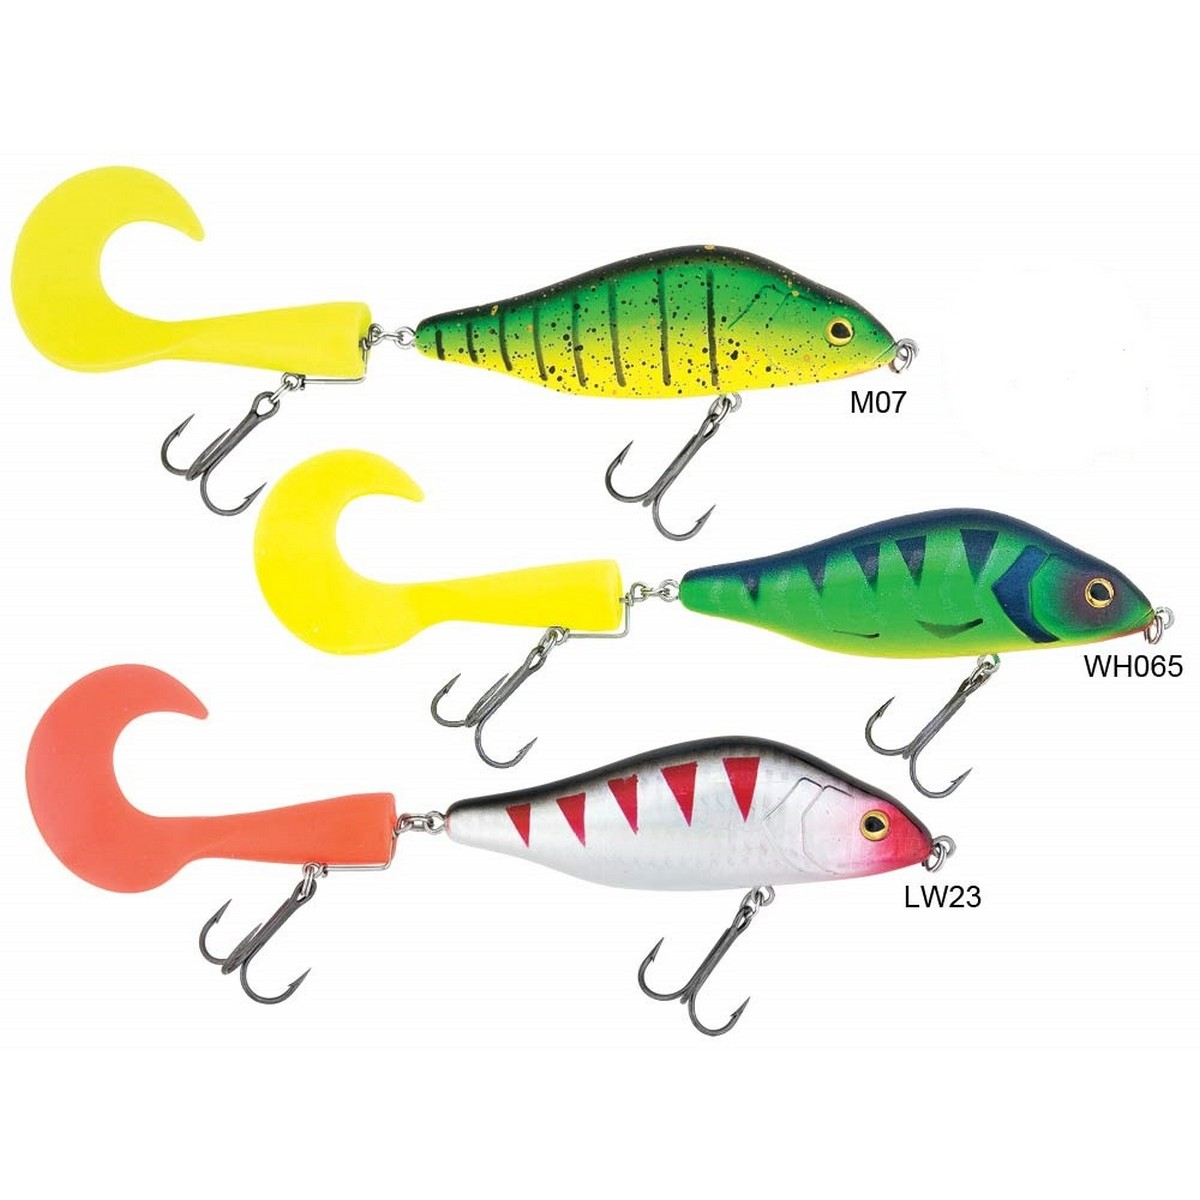 Воблер Baracuda Jerk Soft Tail